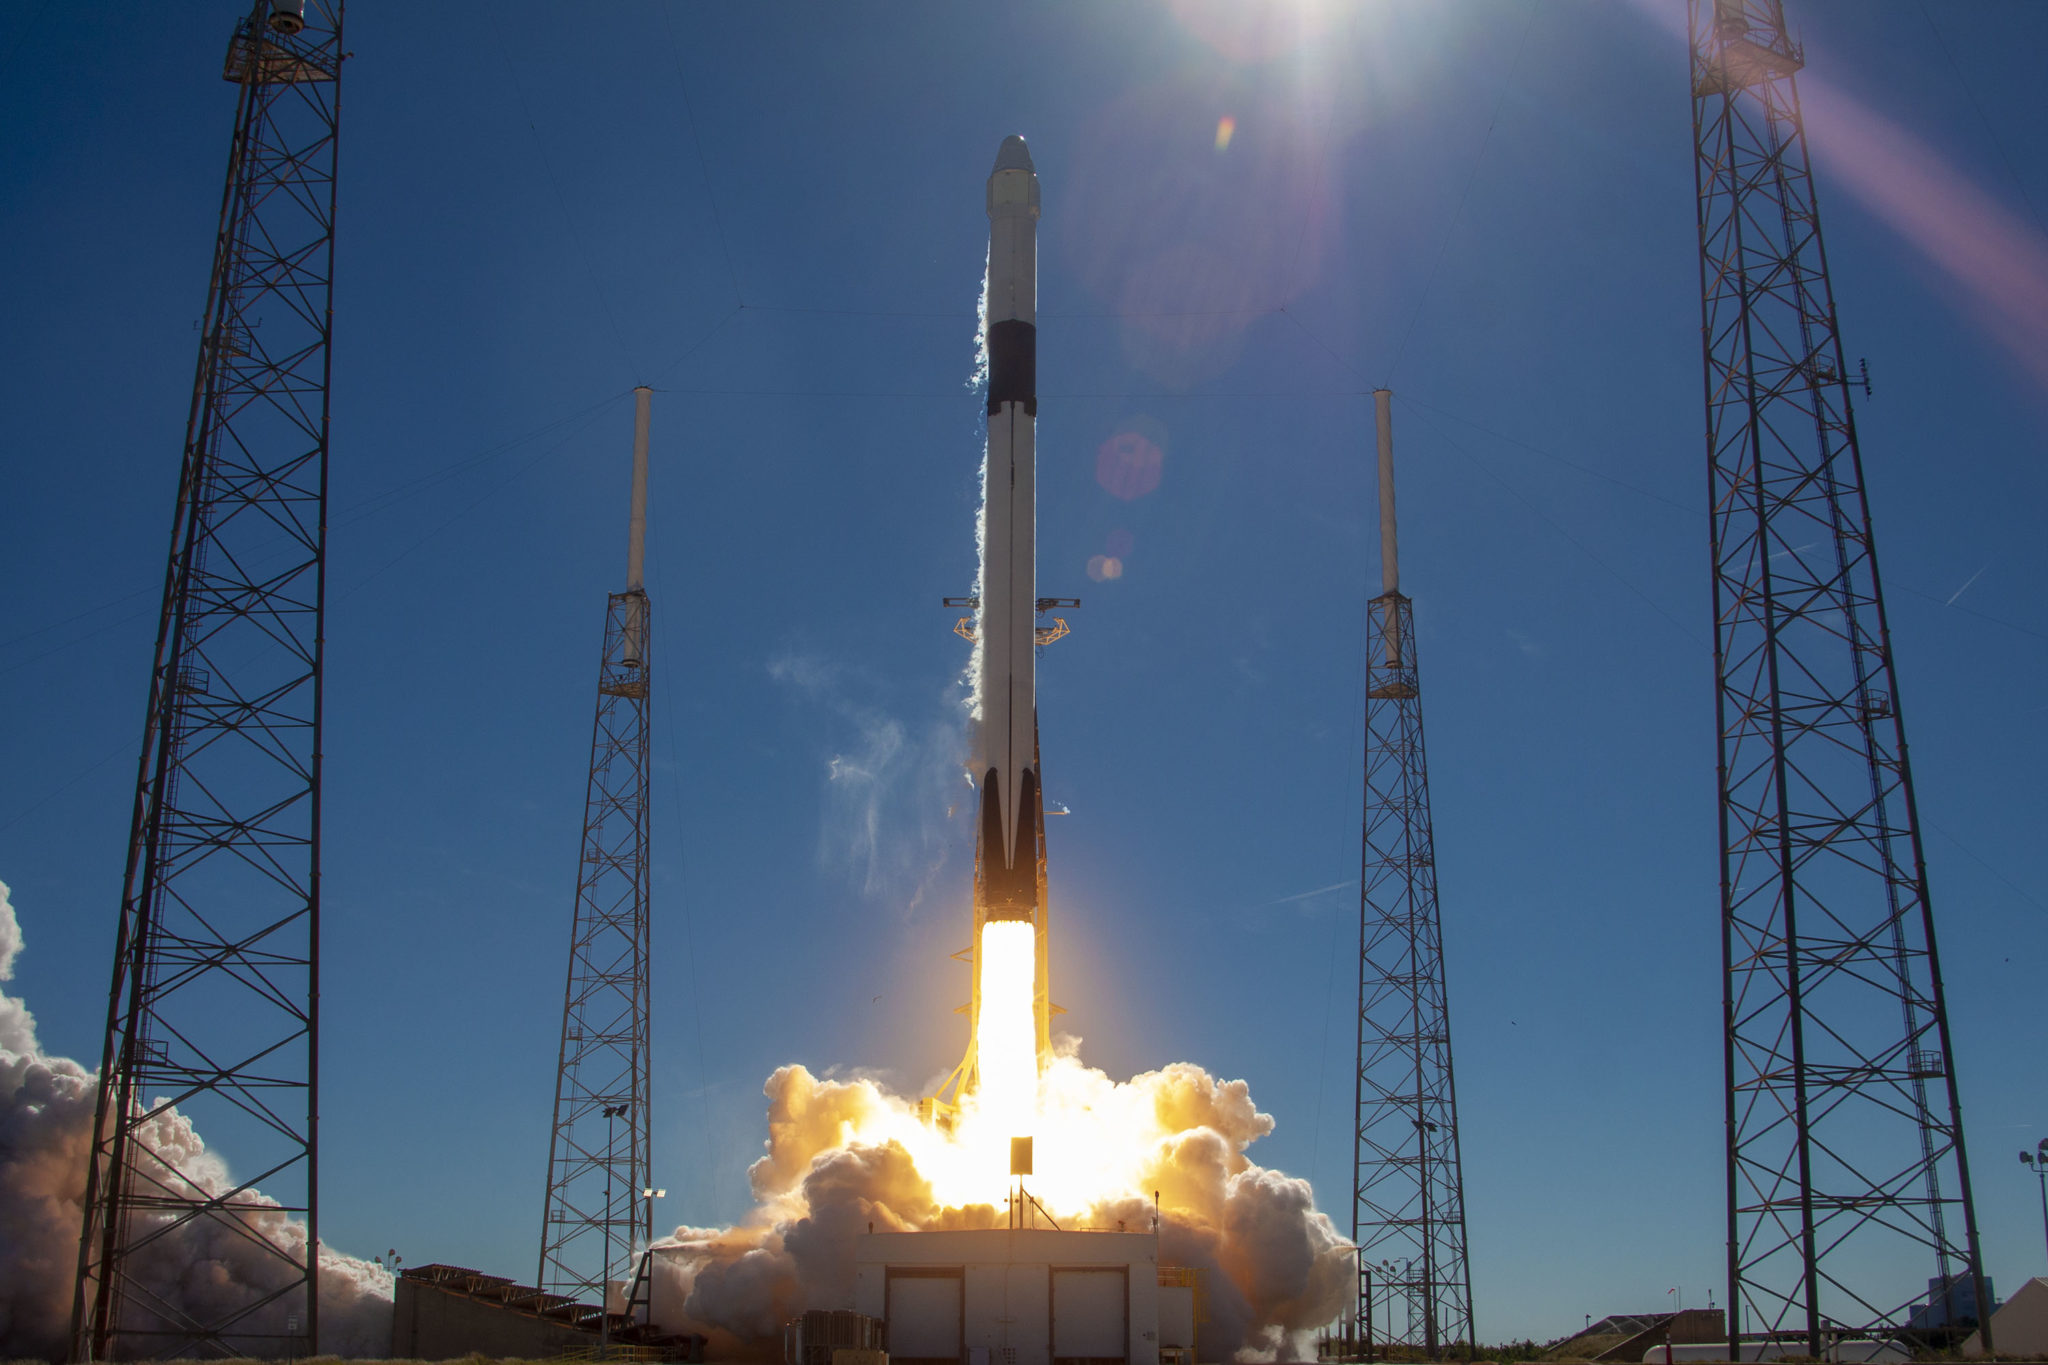 Food shipment launches towards International Space Station